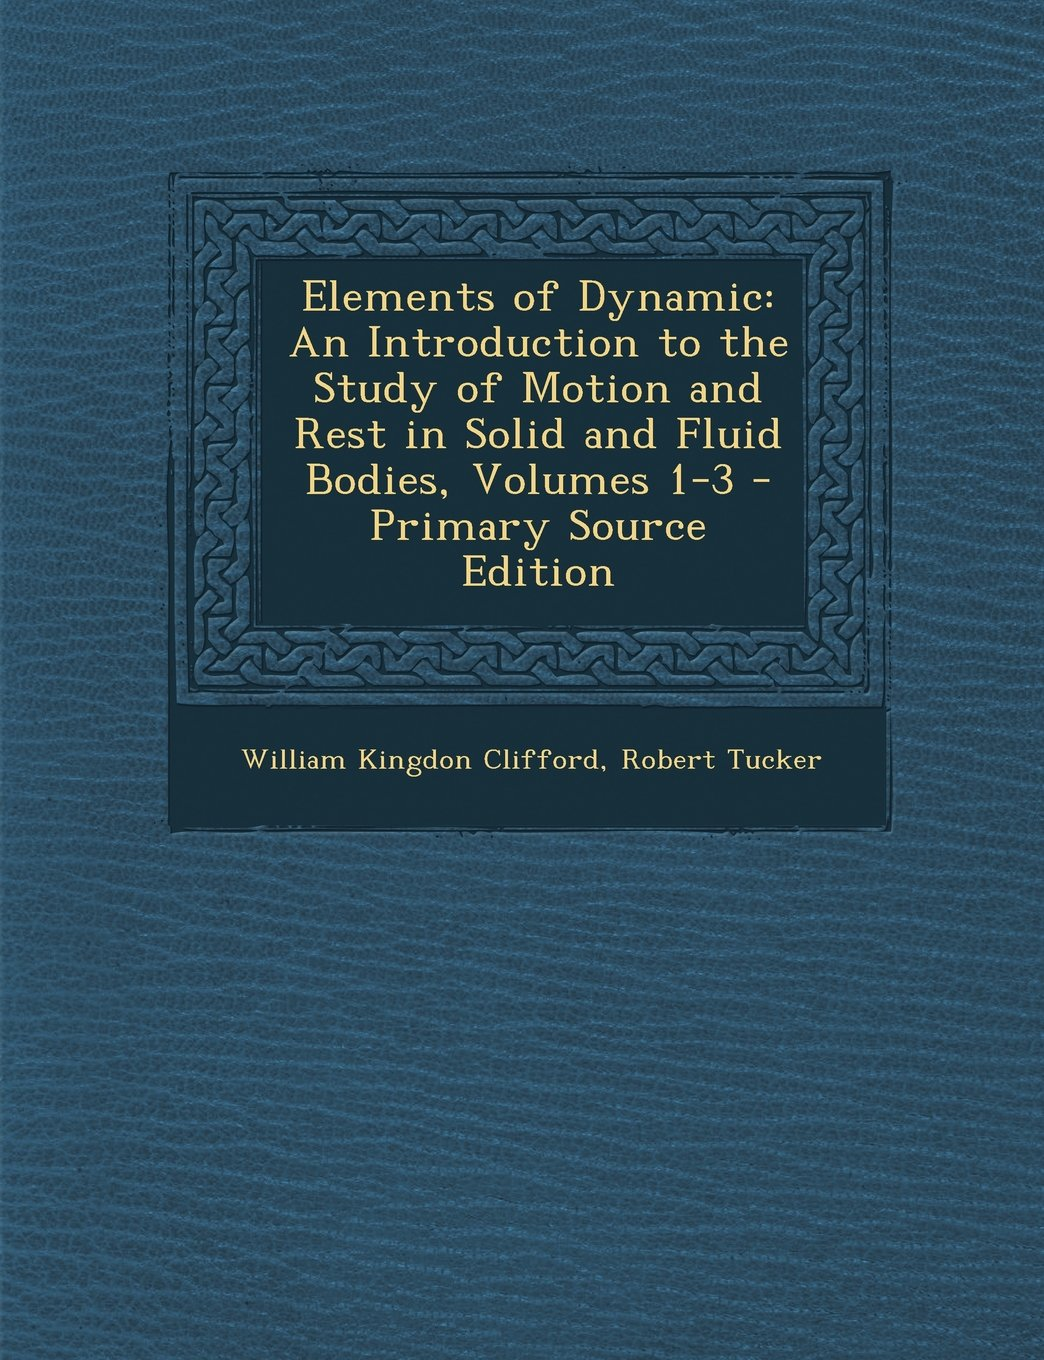 Download Elements of Dynamic: An Introduction to the Study of Motion and Rest in Solid and Fluid Bodies, Volumes 1-3 ebook